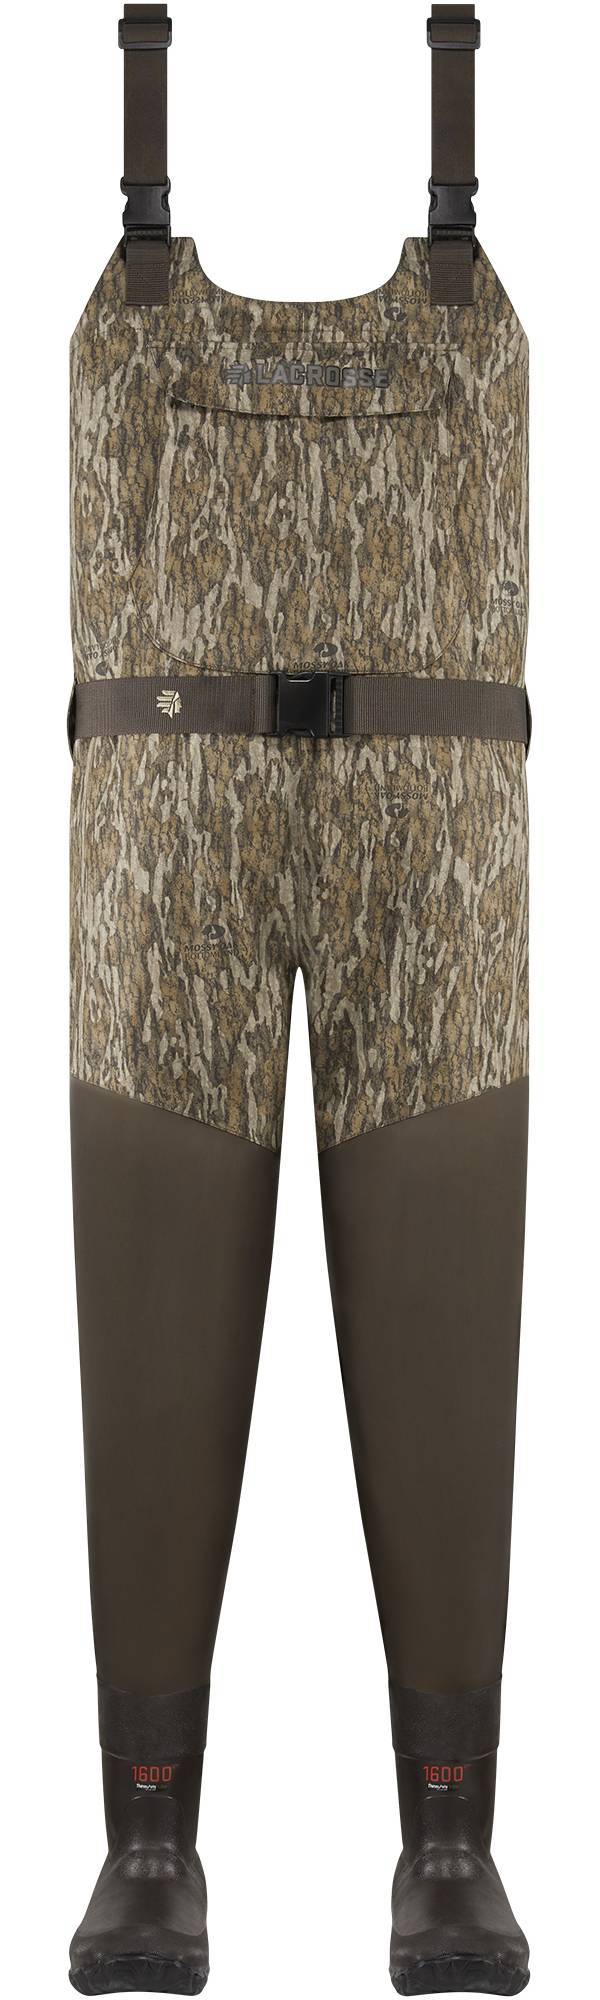 LaCrosse Men's Wetlands Insulated Chest Waders product image